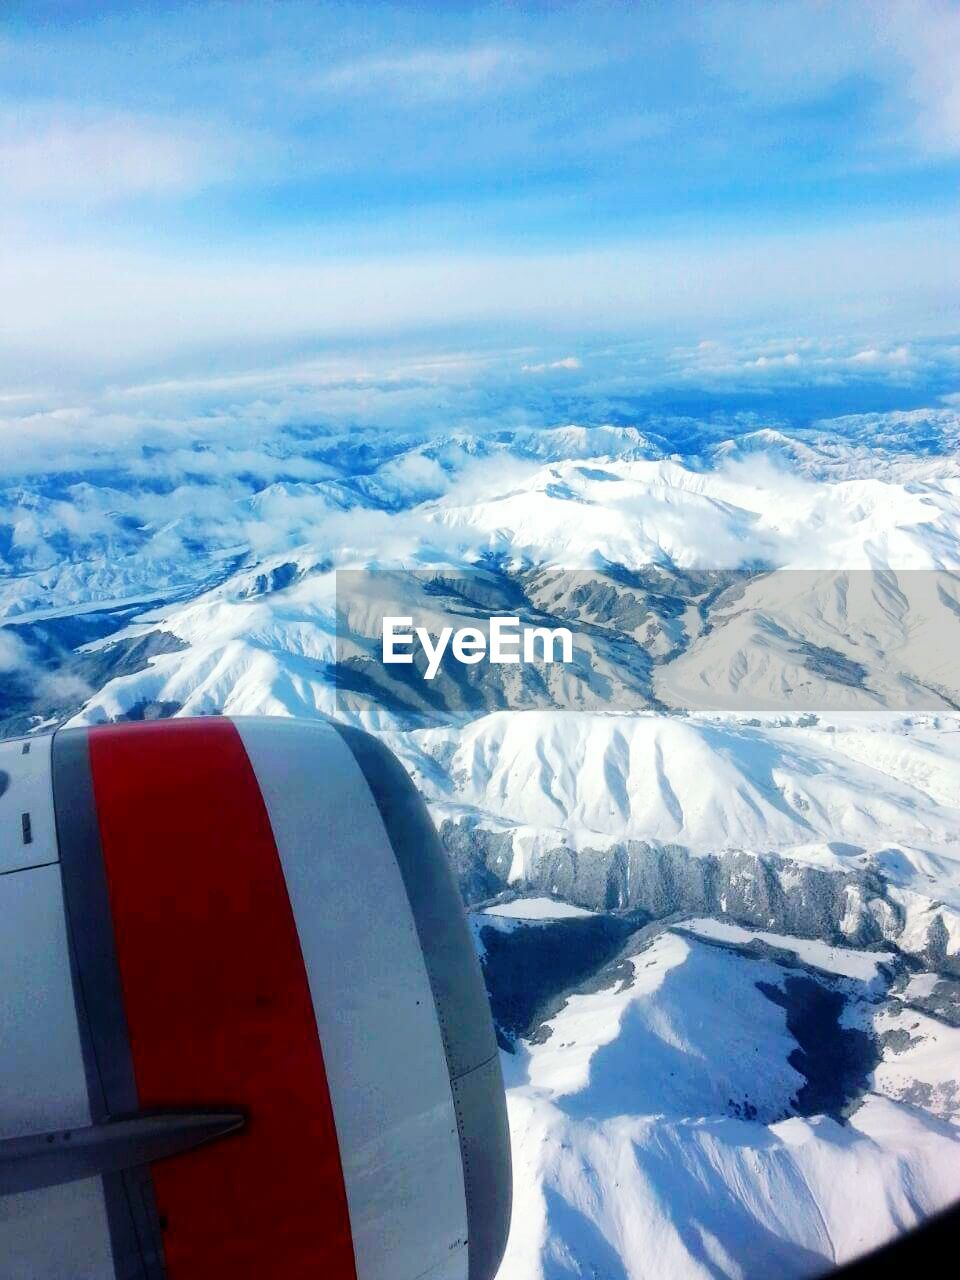 aerial view, winter, snow, cold temperature, nature, airplane, beauty in nature, no people, scenics, white color, transportation, day, weather, snowcapped mountain, air vehicle, outdoors, tranquil scene, tranquility, sky, landscape, airplane wing, flying, close-up